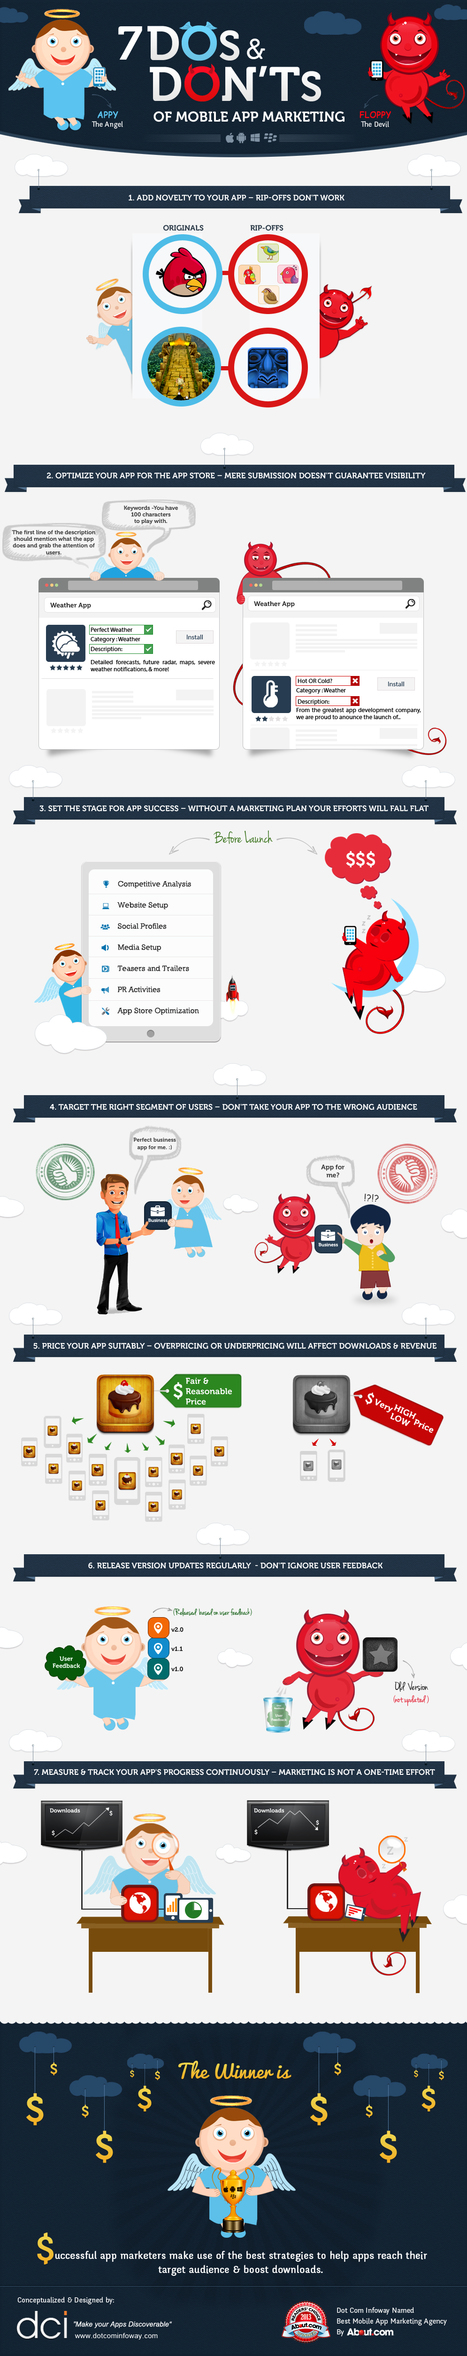 7 Dos and Don'ts of Mobile App Marketing [Infographic] | Mobile Marketing for Businesses | Scoop.it